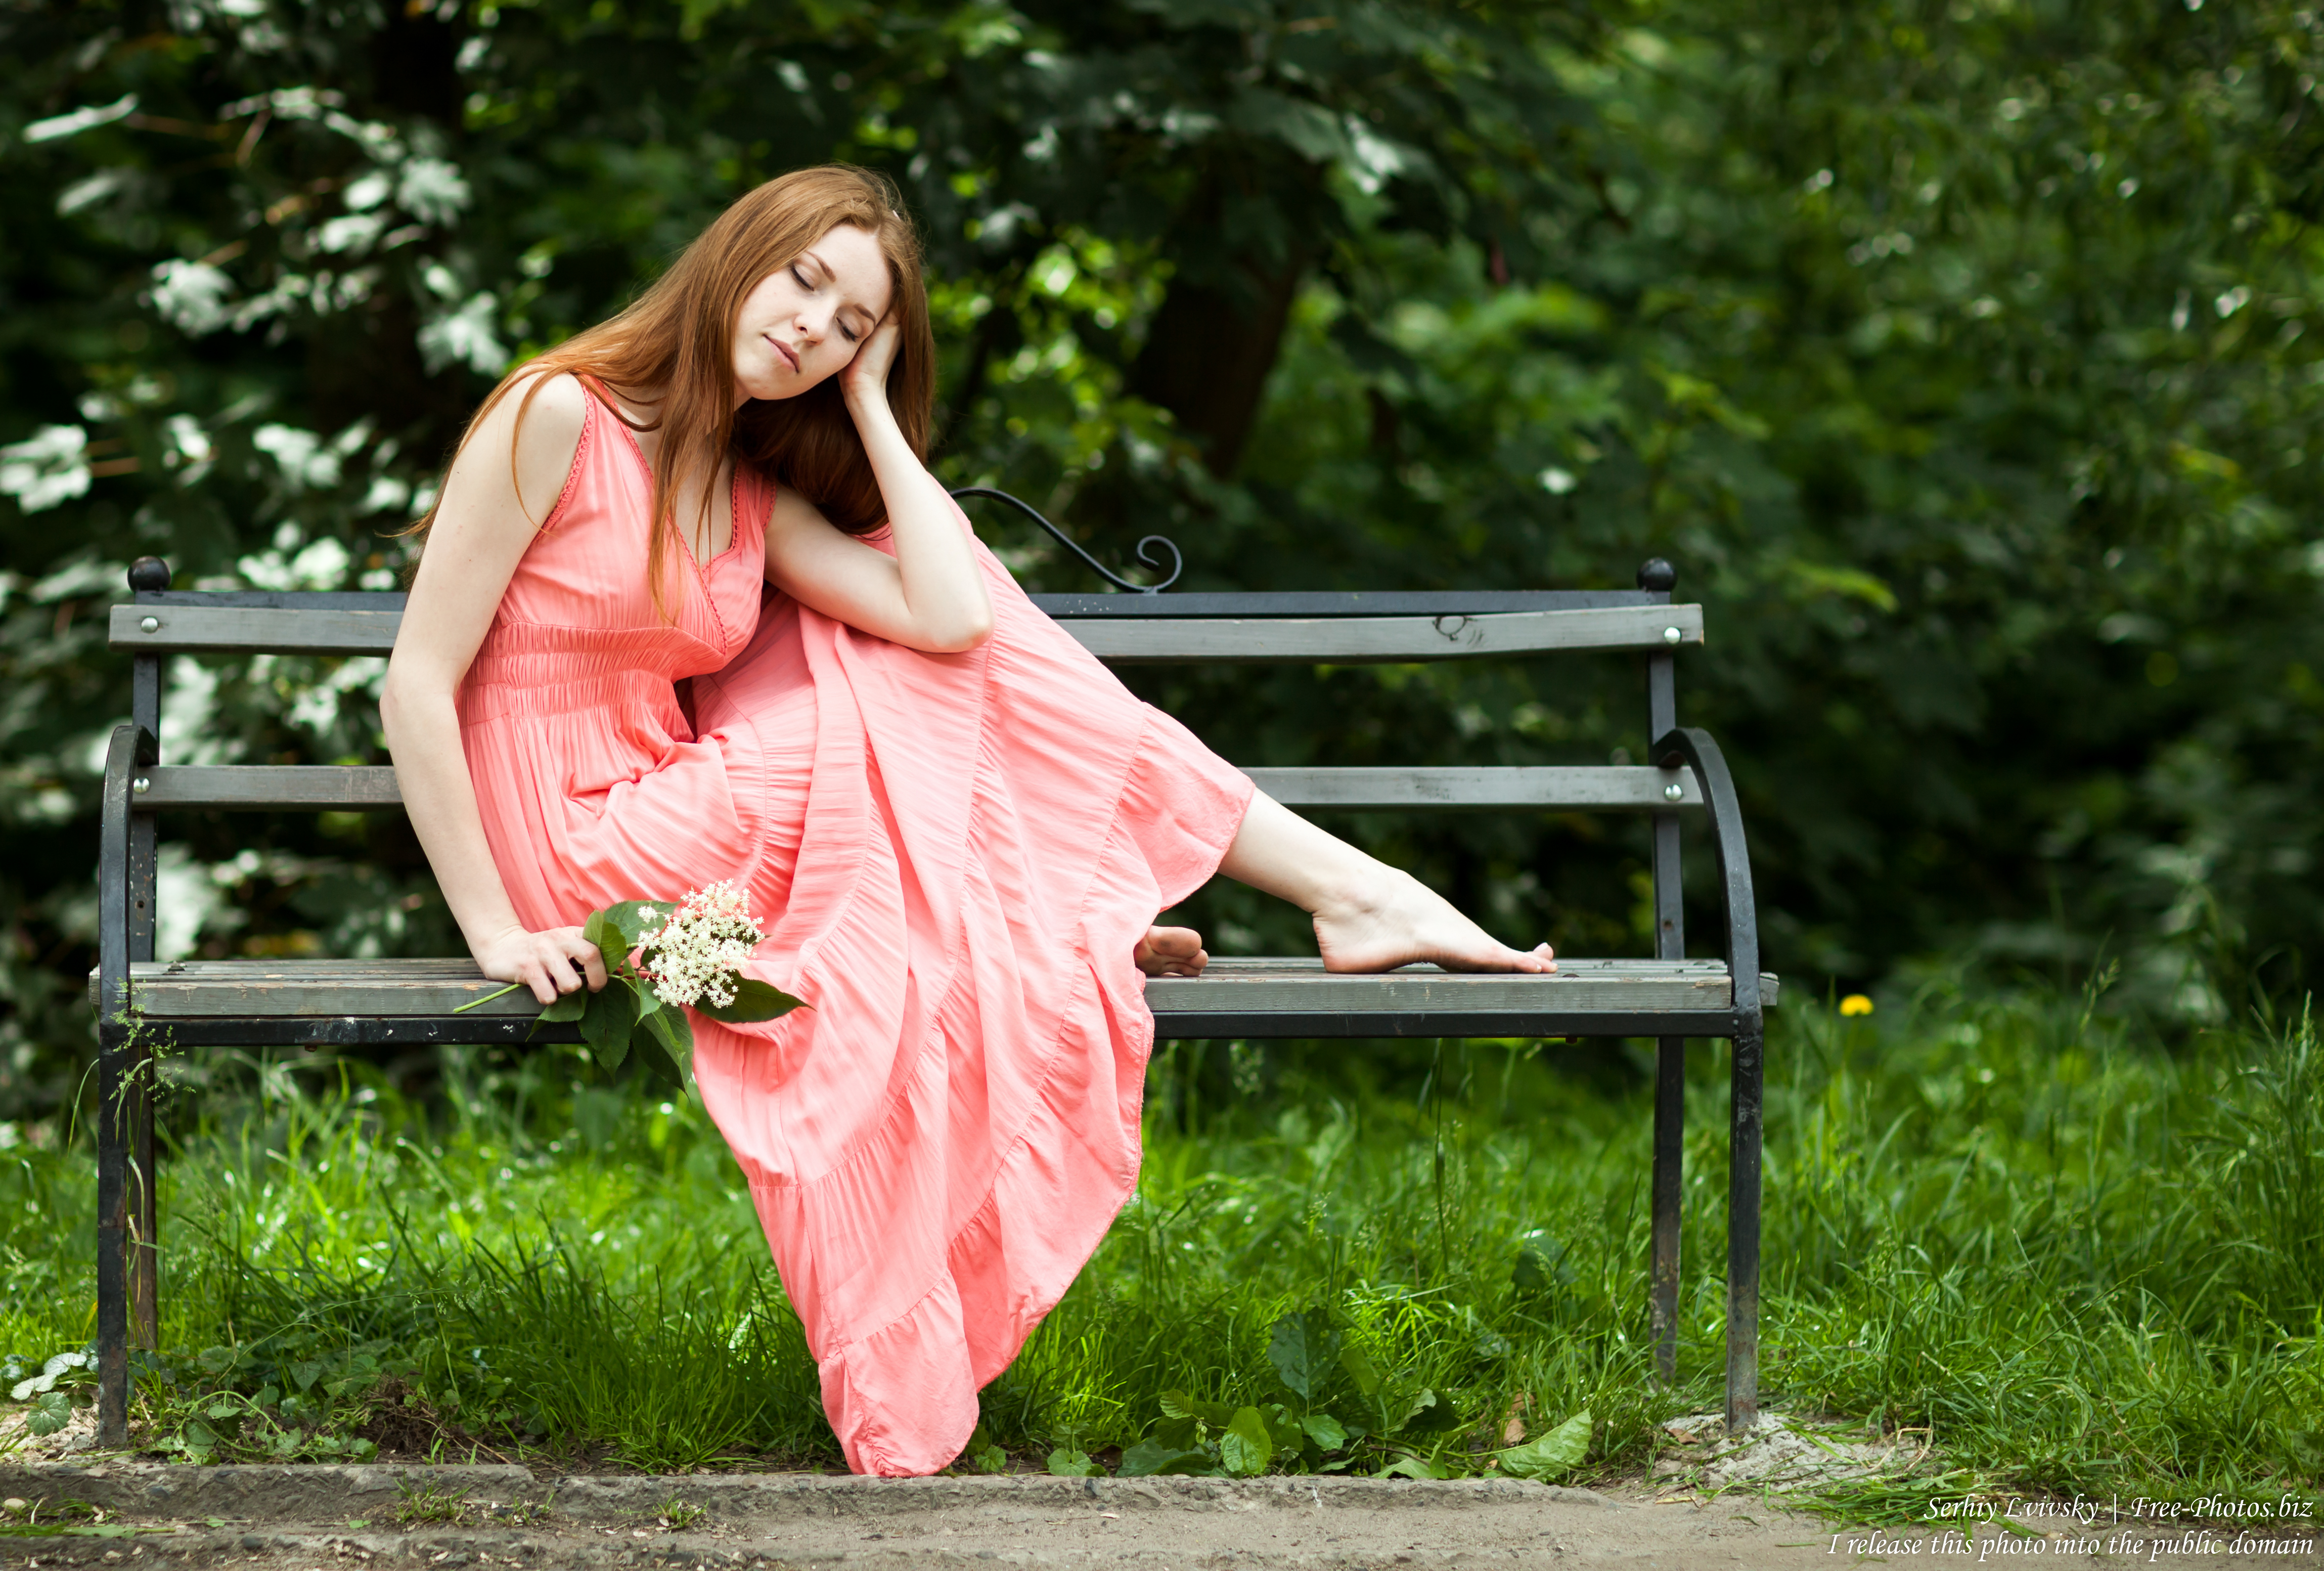 Yana - a 23-year-old girl with natural red hair photographed in June 2017 by Serhiy Lvivsky, picture 12